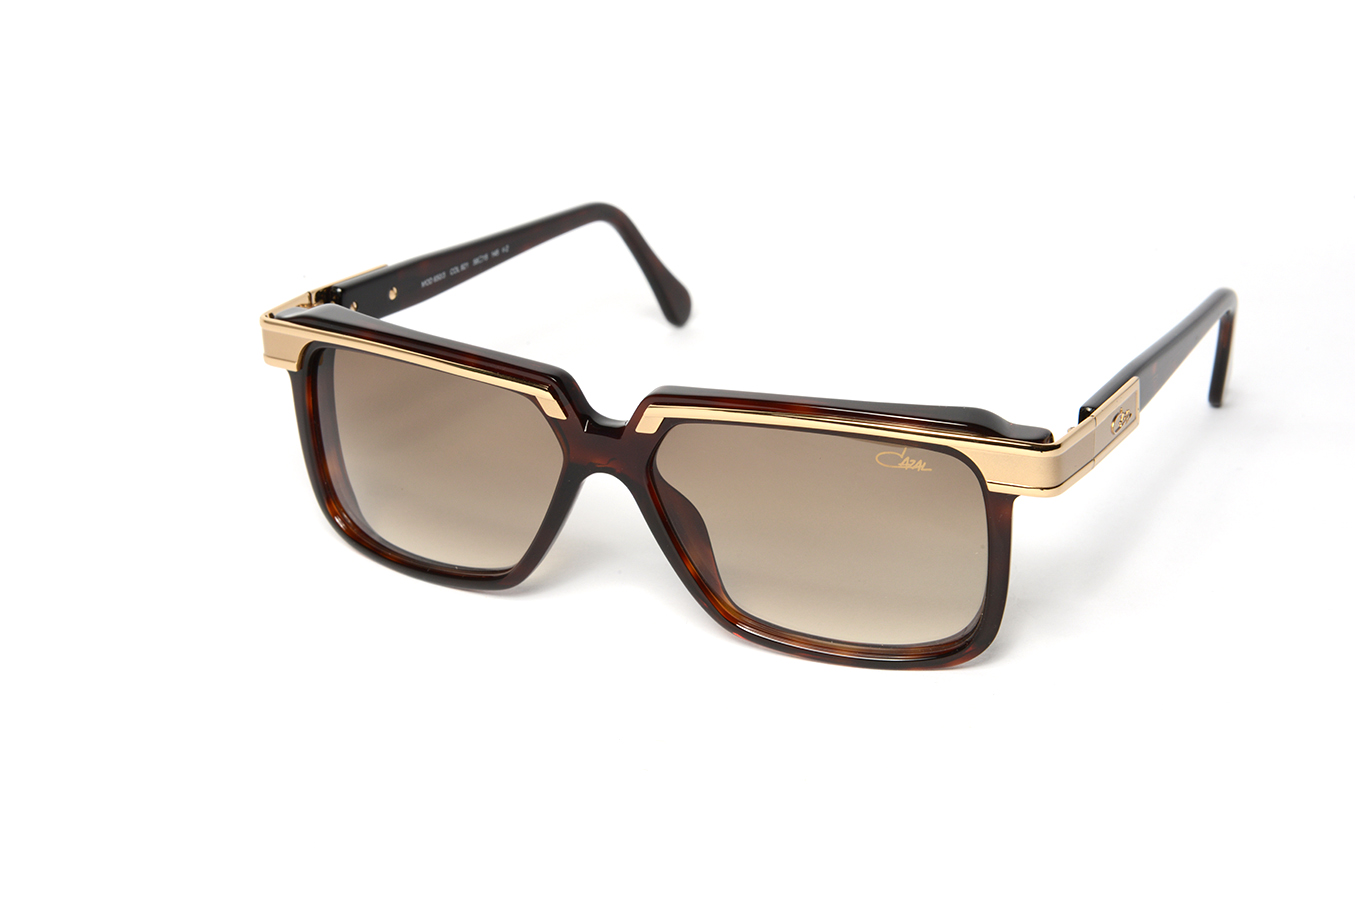 cazal eyewear 650 piccadilly opticians